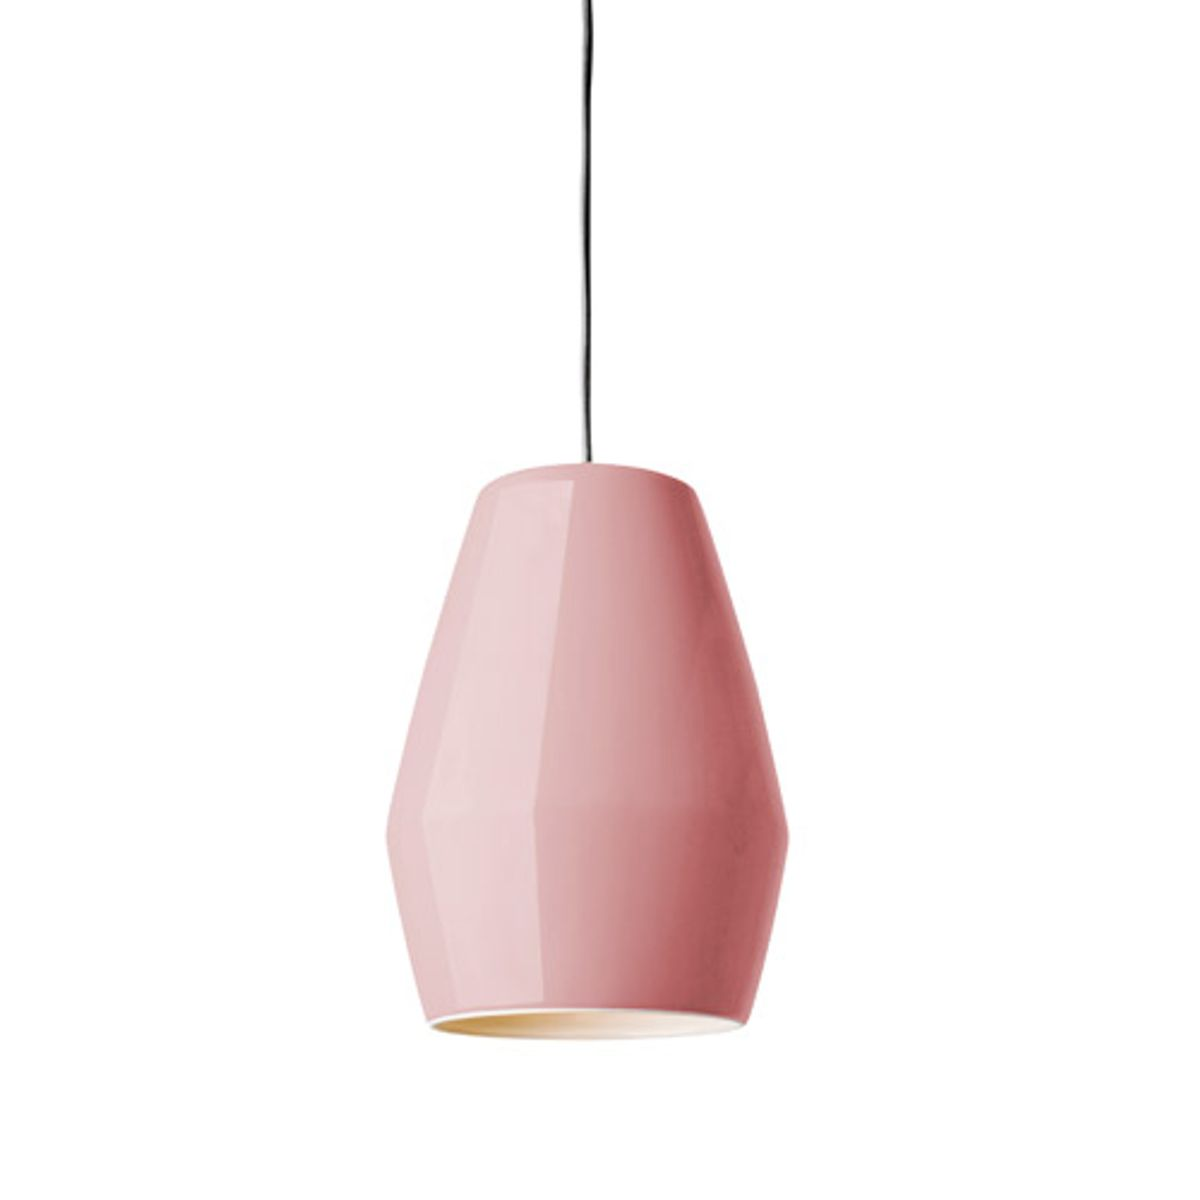 Suspension en porcelaine Bell Northern Lighting - rose